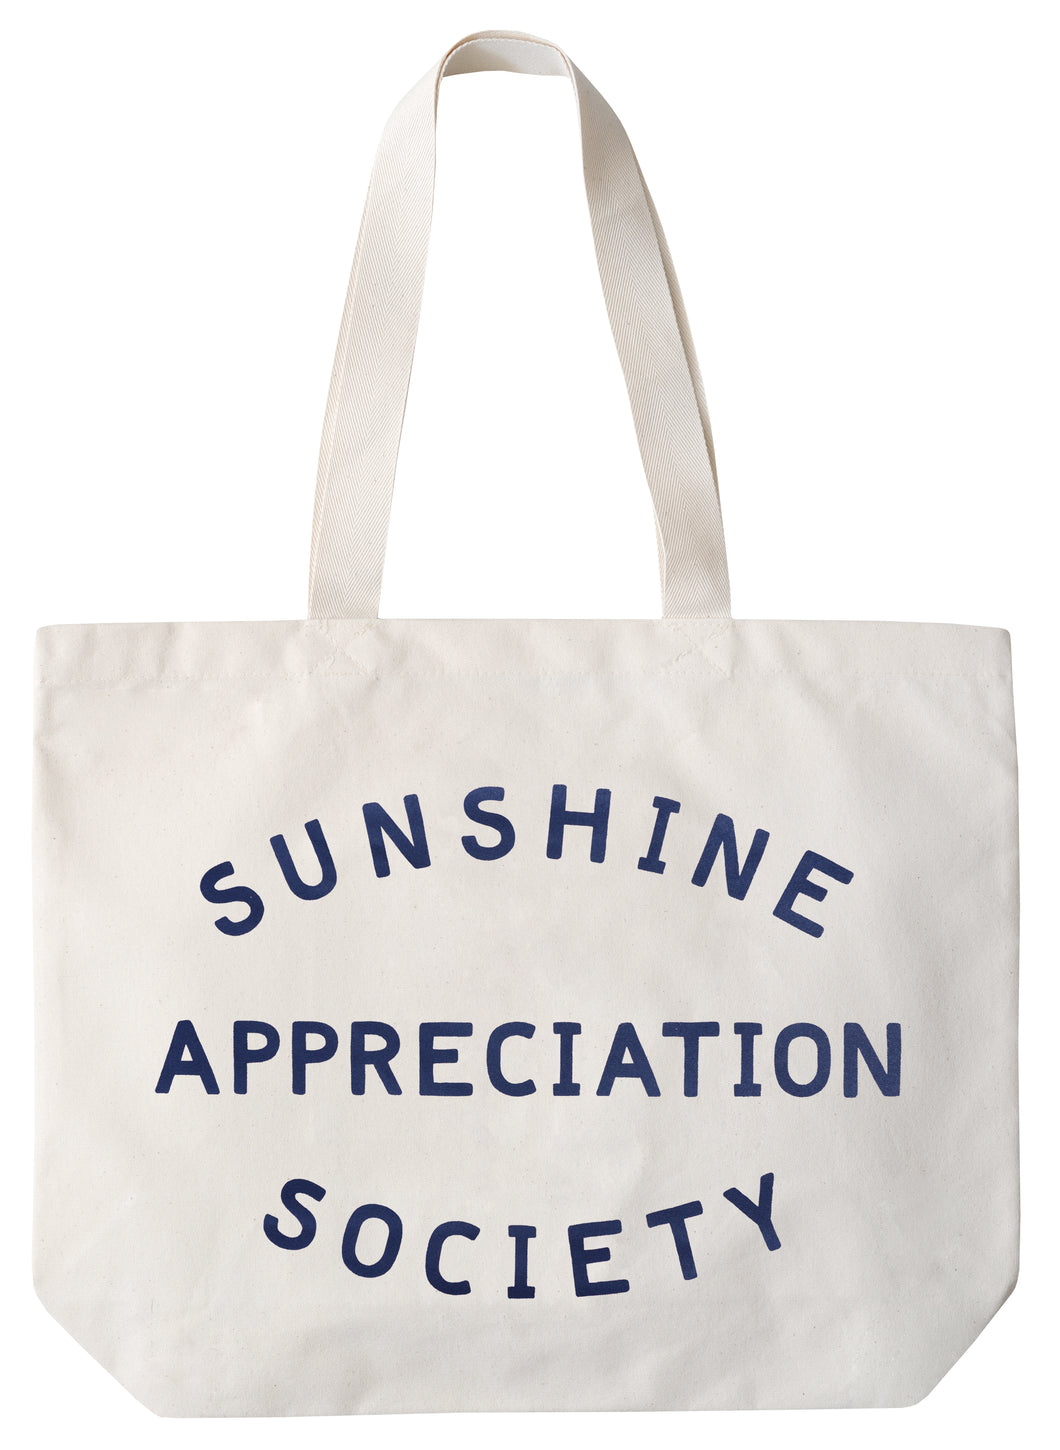 'Sunshine Appreciation Society' Big Canvas Tote Bag